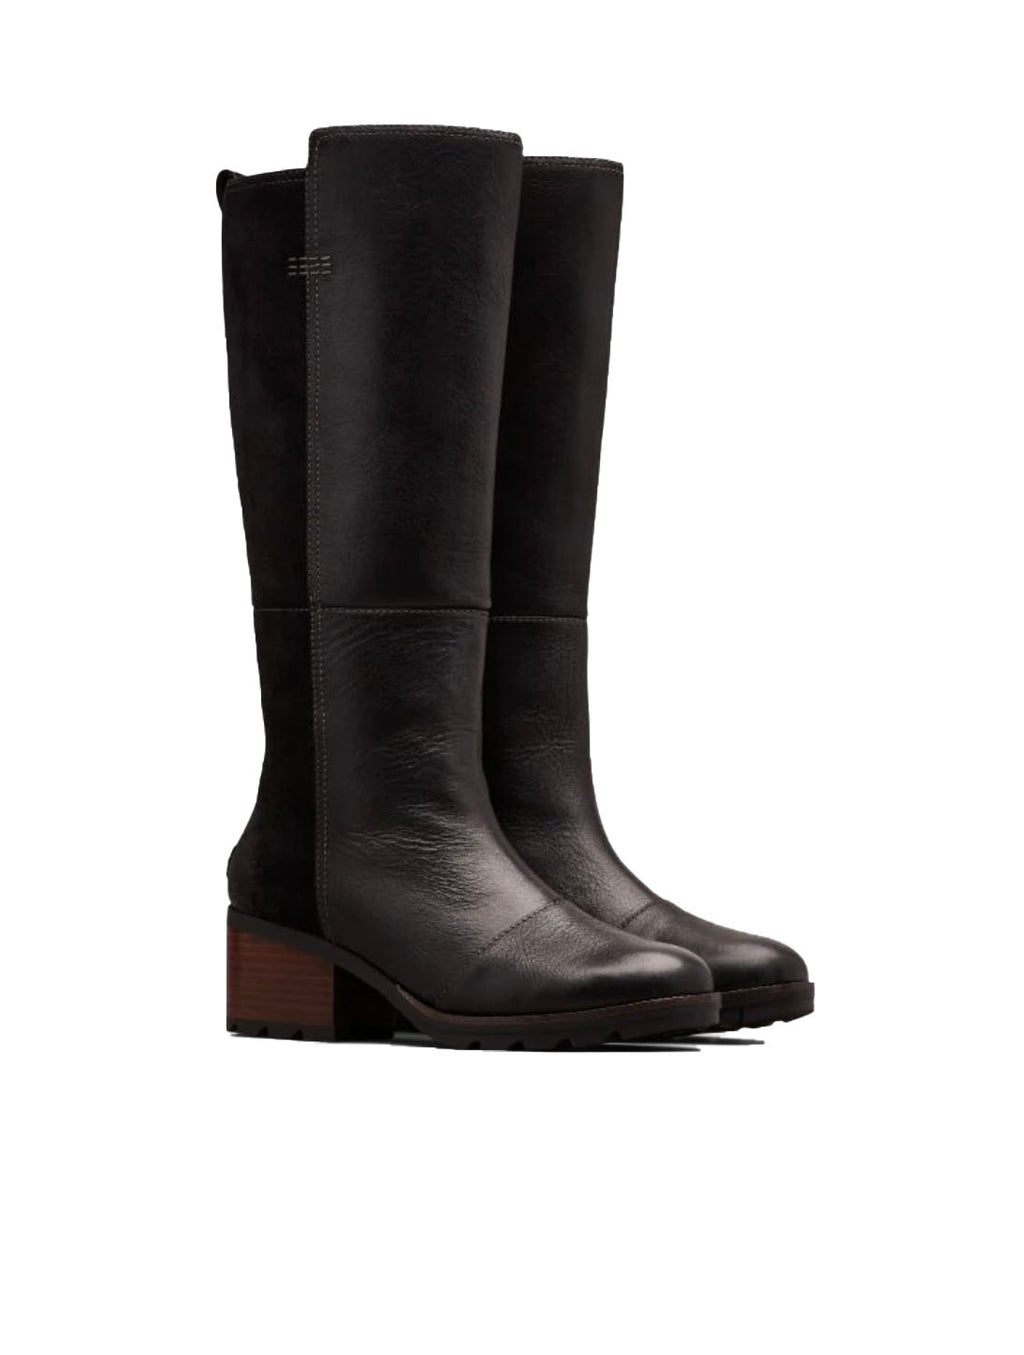 Sorel Cate Tall Boot in Black